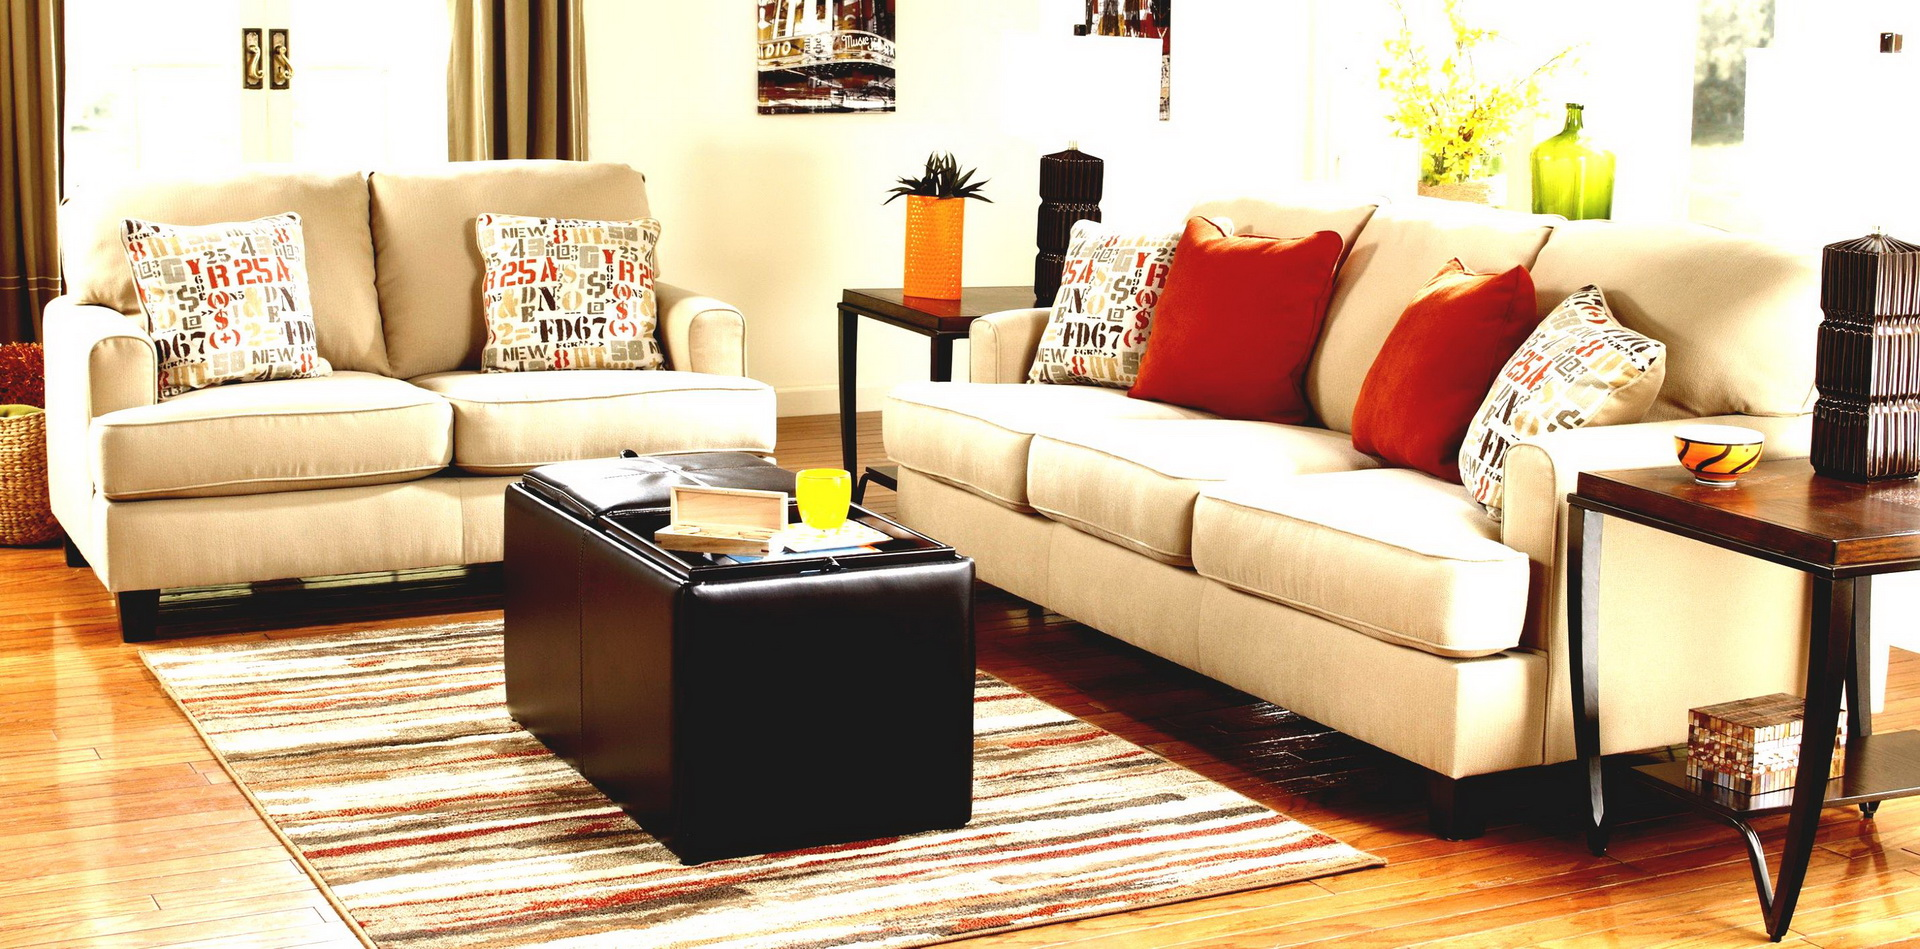 25 facts to know about Ashley furniture living room sets